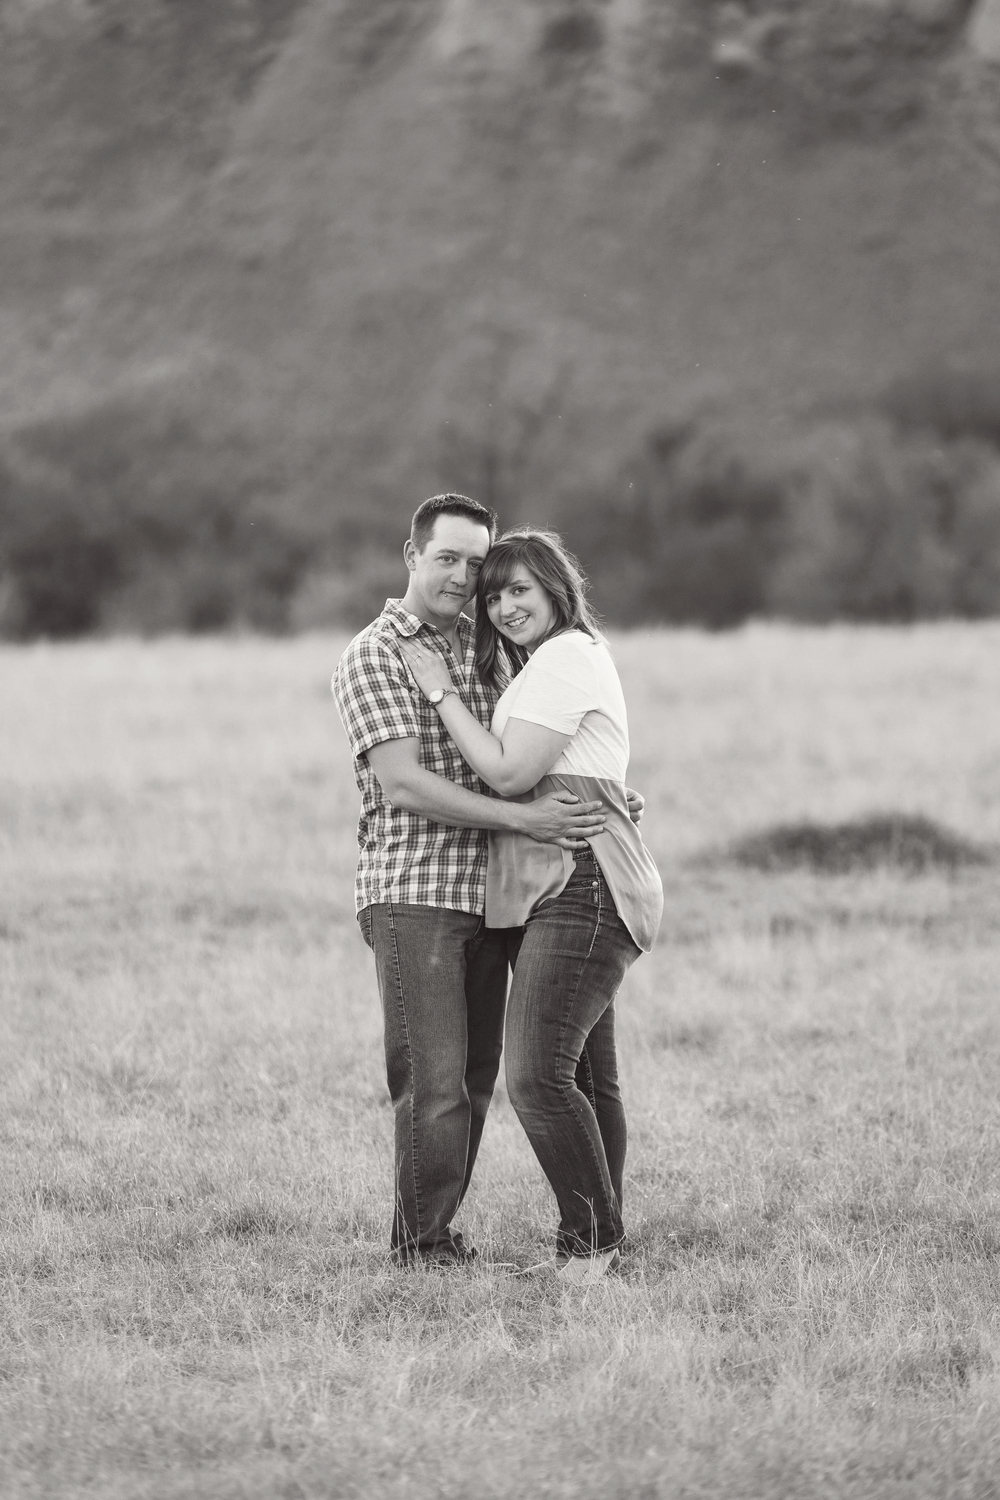 LR_engagement_009_bw.jpg